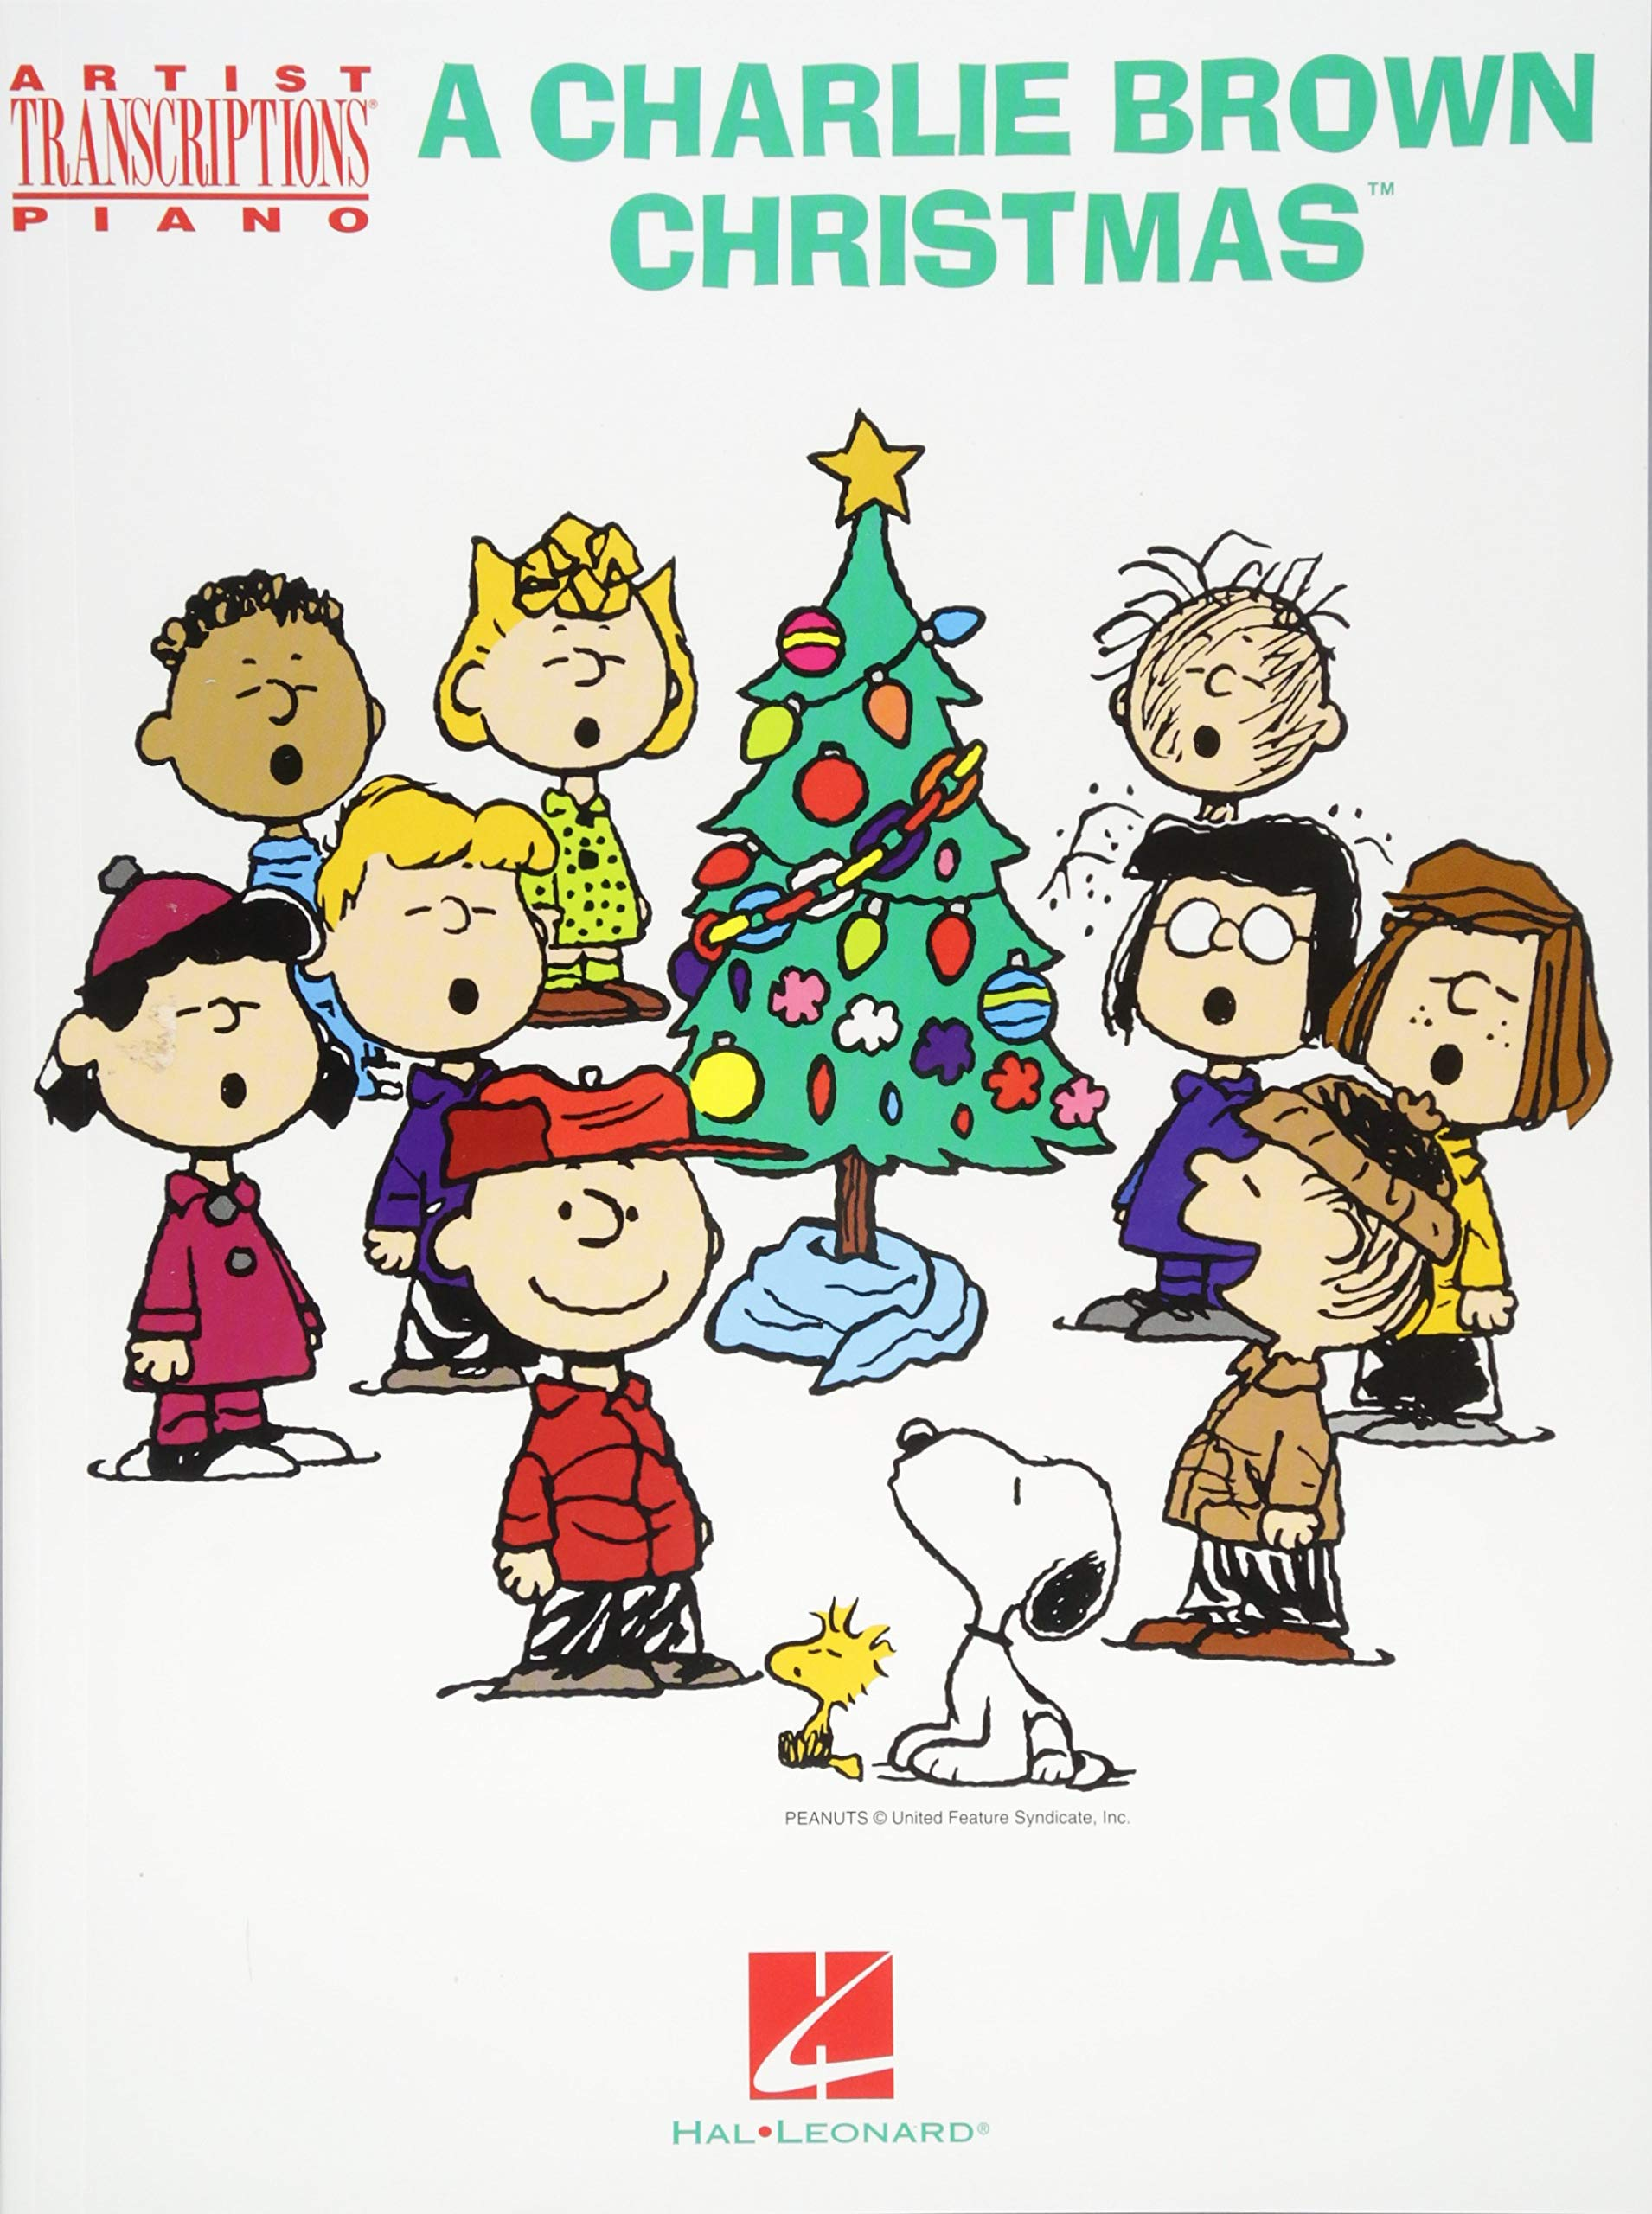 A Charlie Brown Christmas Artist Transcriptions For Piano Vince